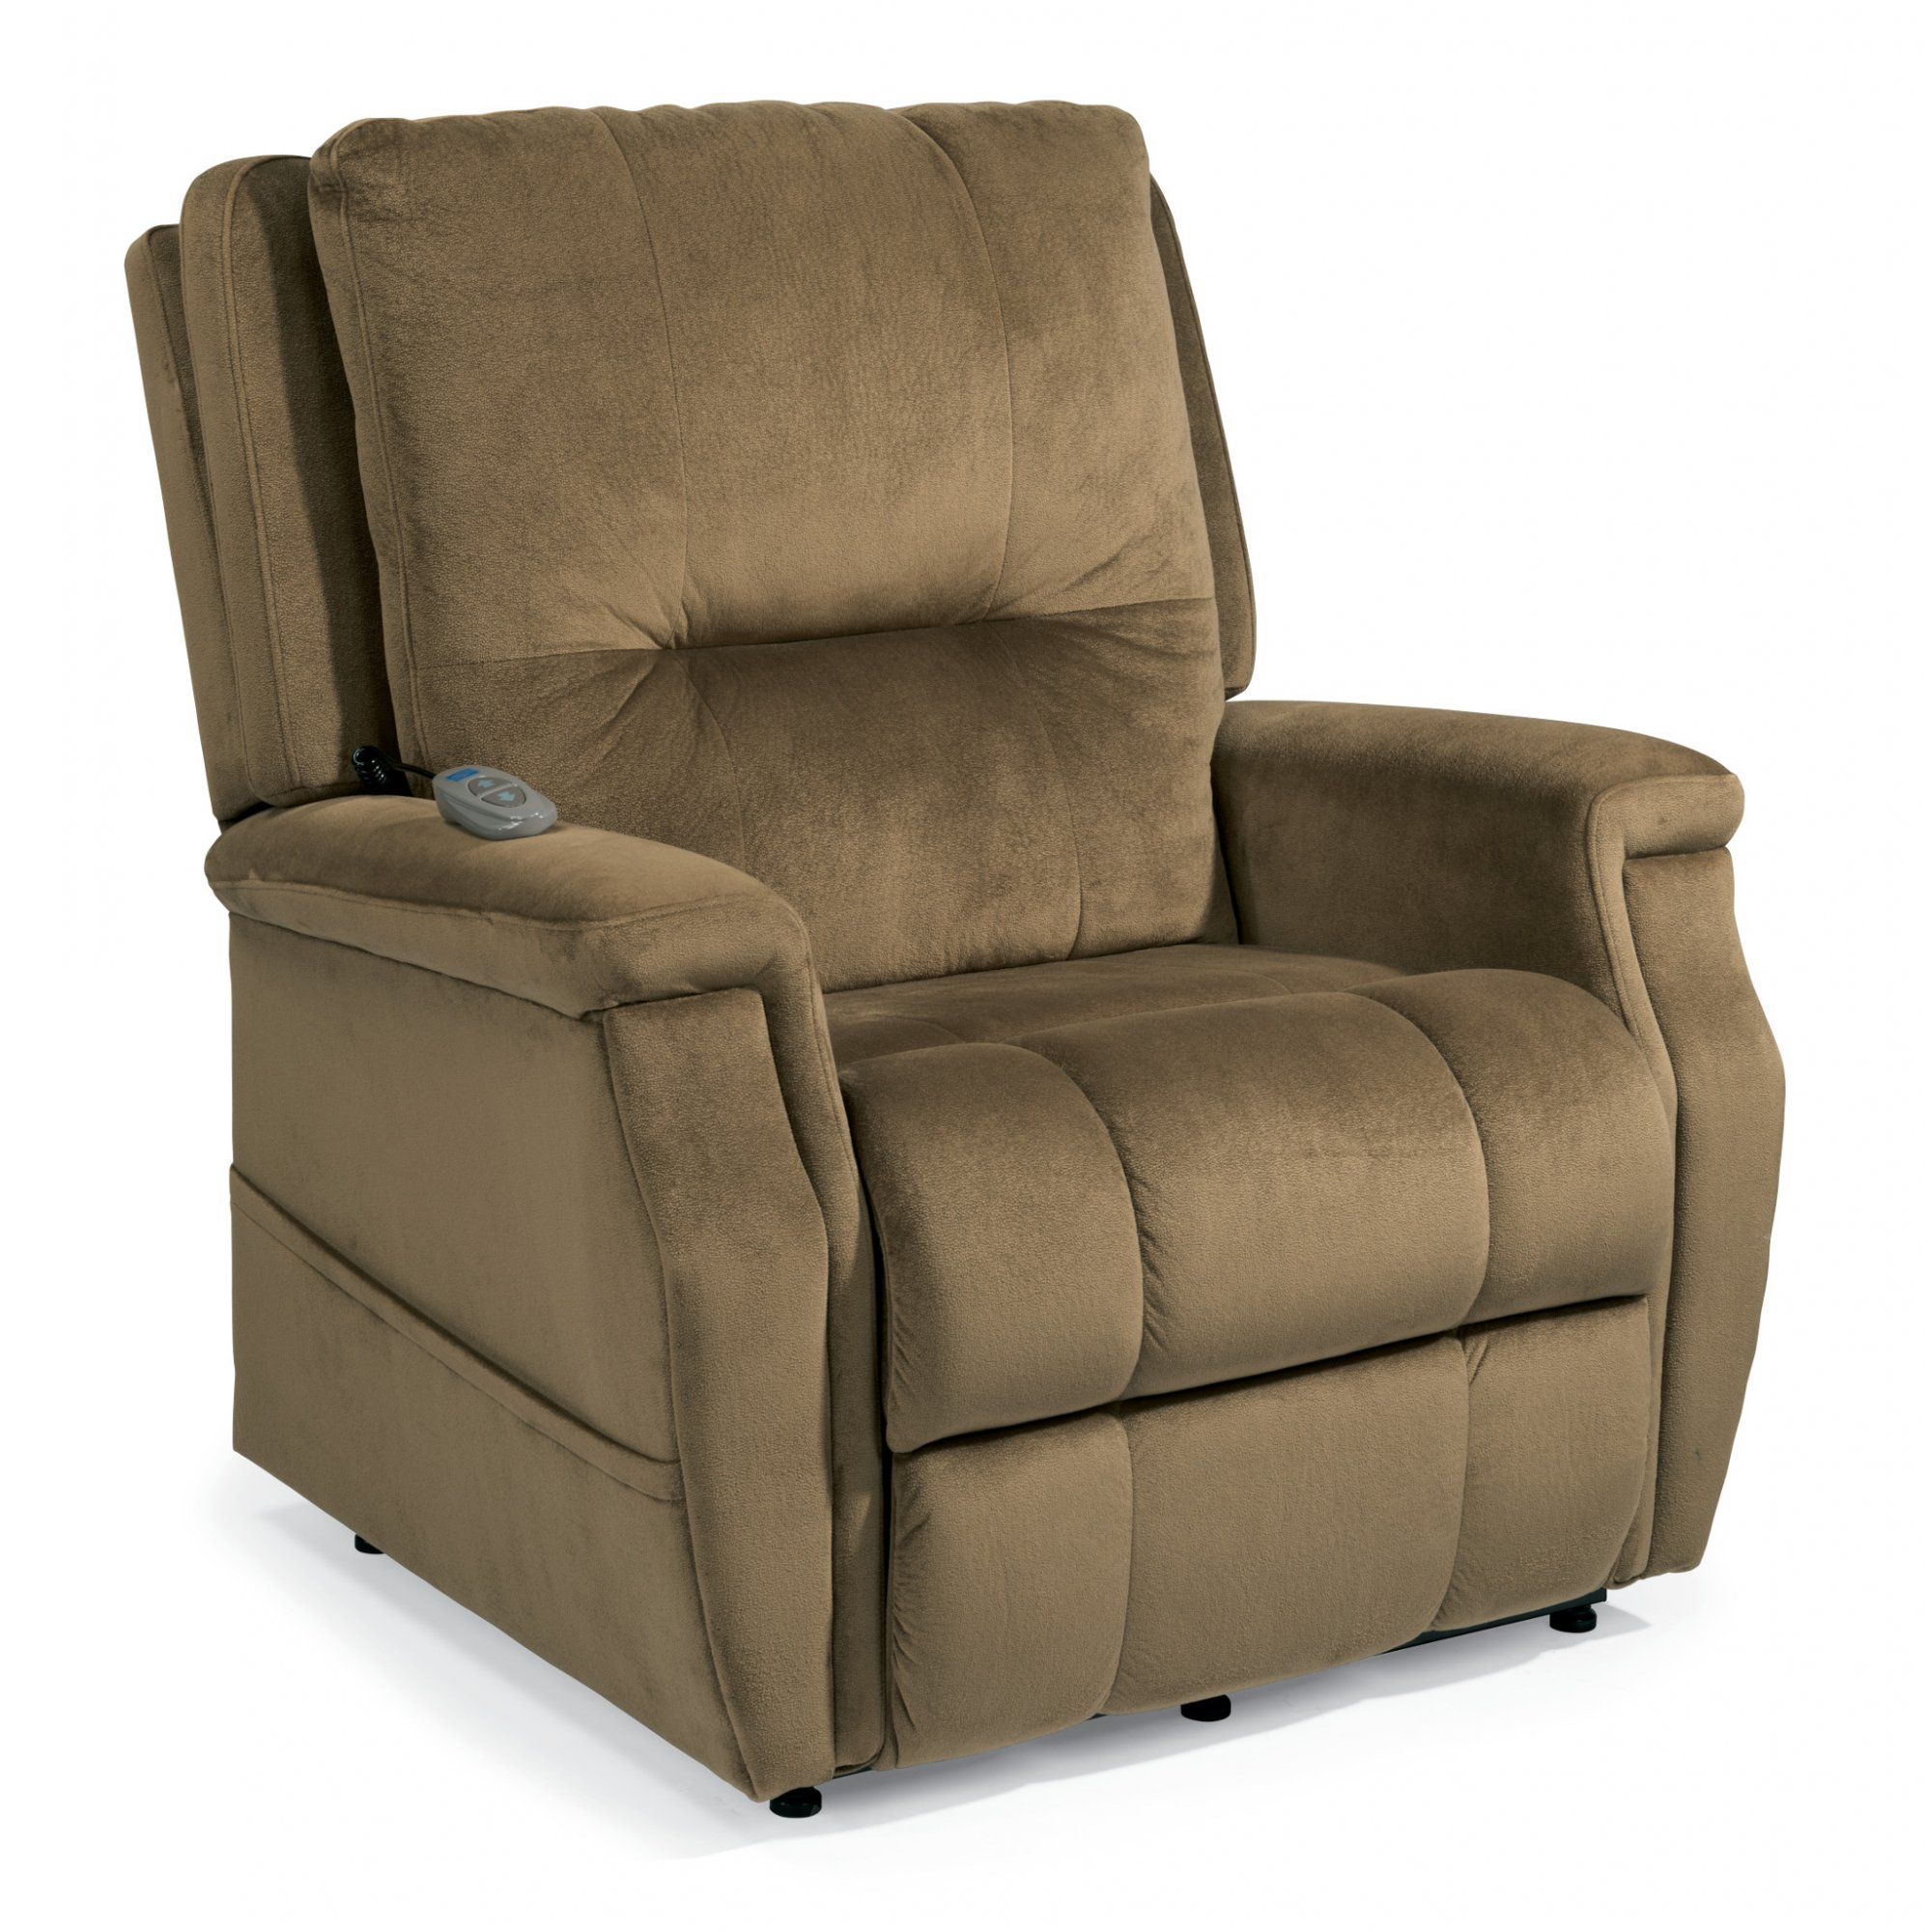 Lift Reclining Furniture